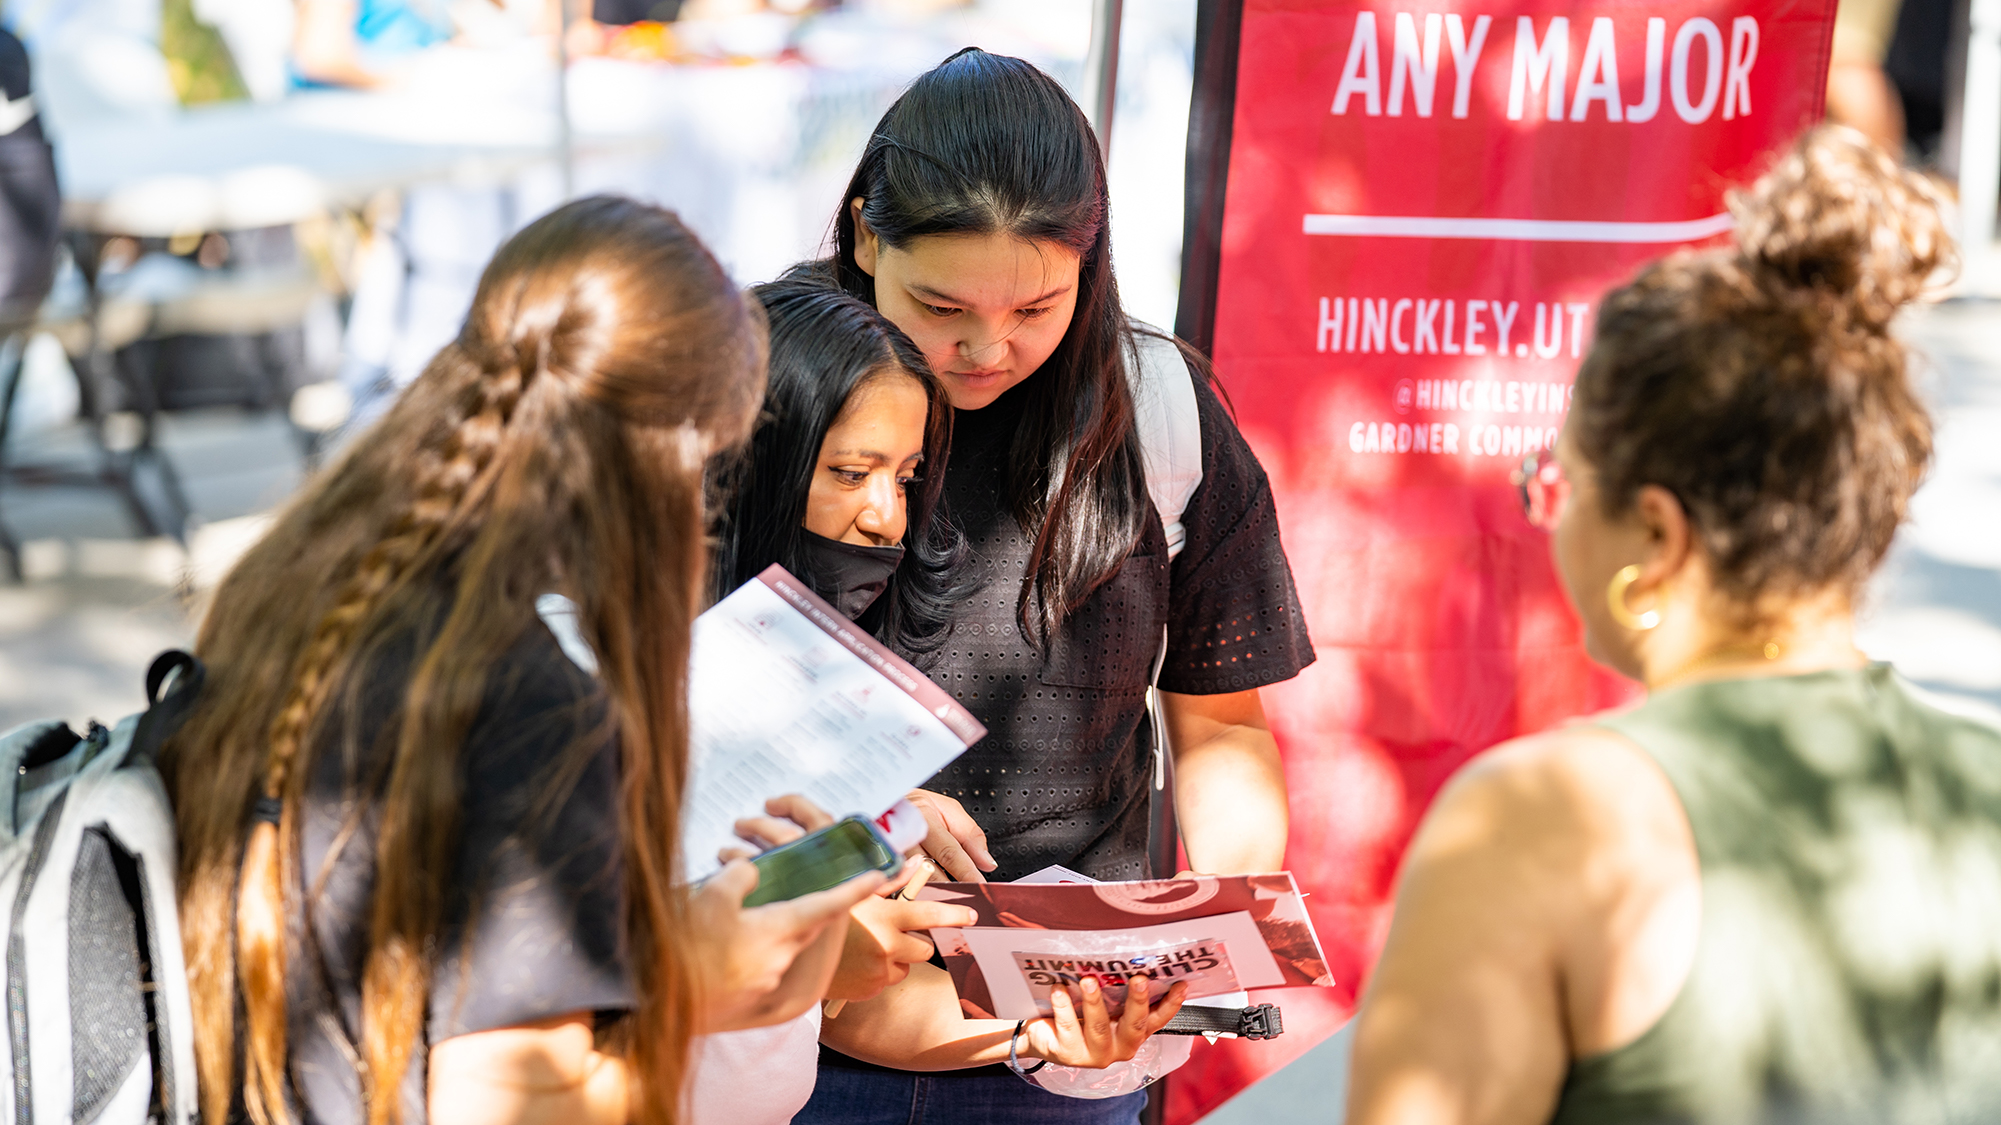 three University of Utah students look at flyers handed out by a staff member during a tabling event on campus.